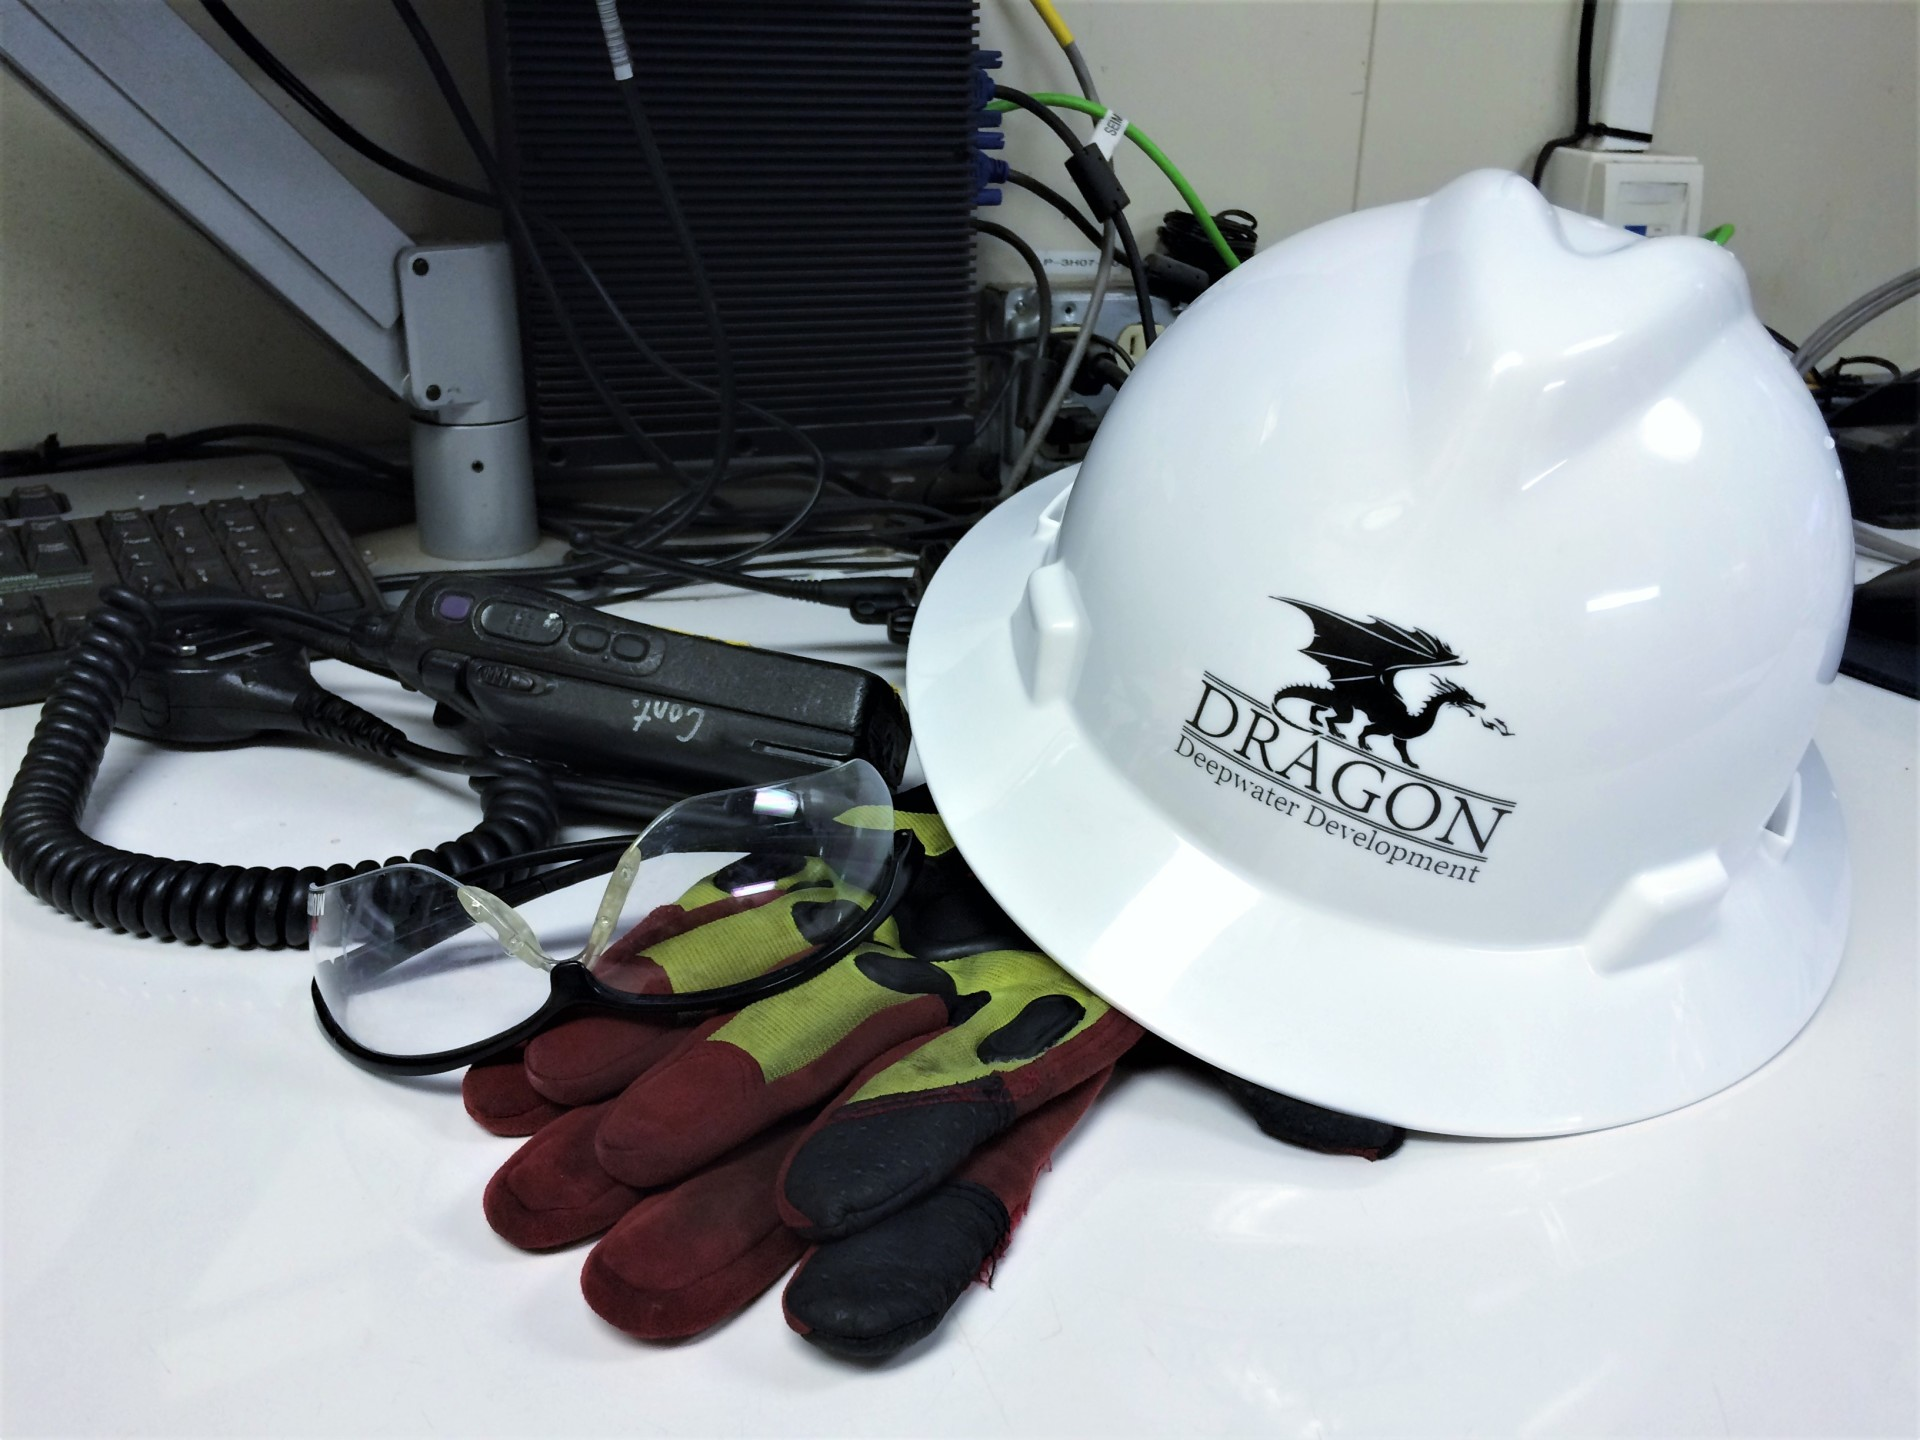 Dragon, Deepwater, Subsea, Third Party Inspection, Project Management, Engineering, Installation, Commissioning, Consultants, Deepsea, Safety, Gloves, Radio, Glasses, Hard Hat